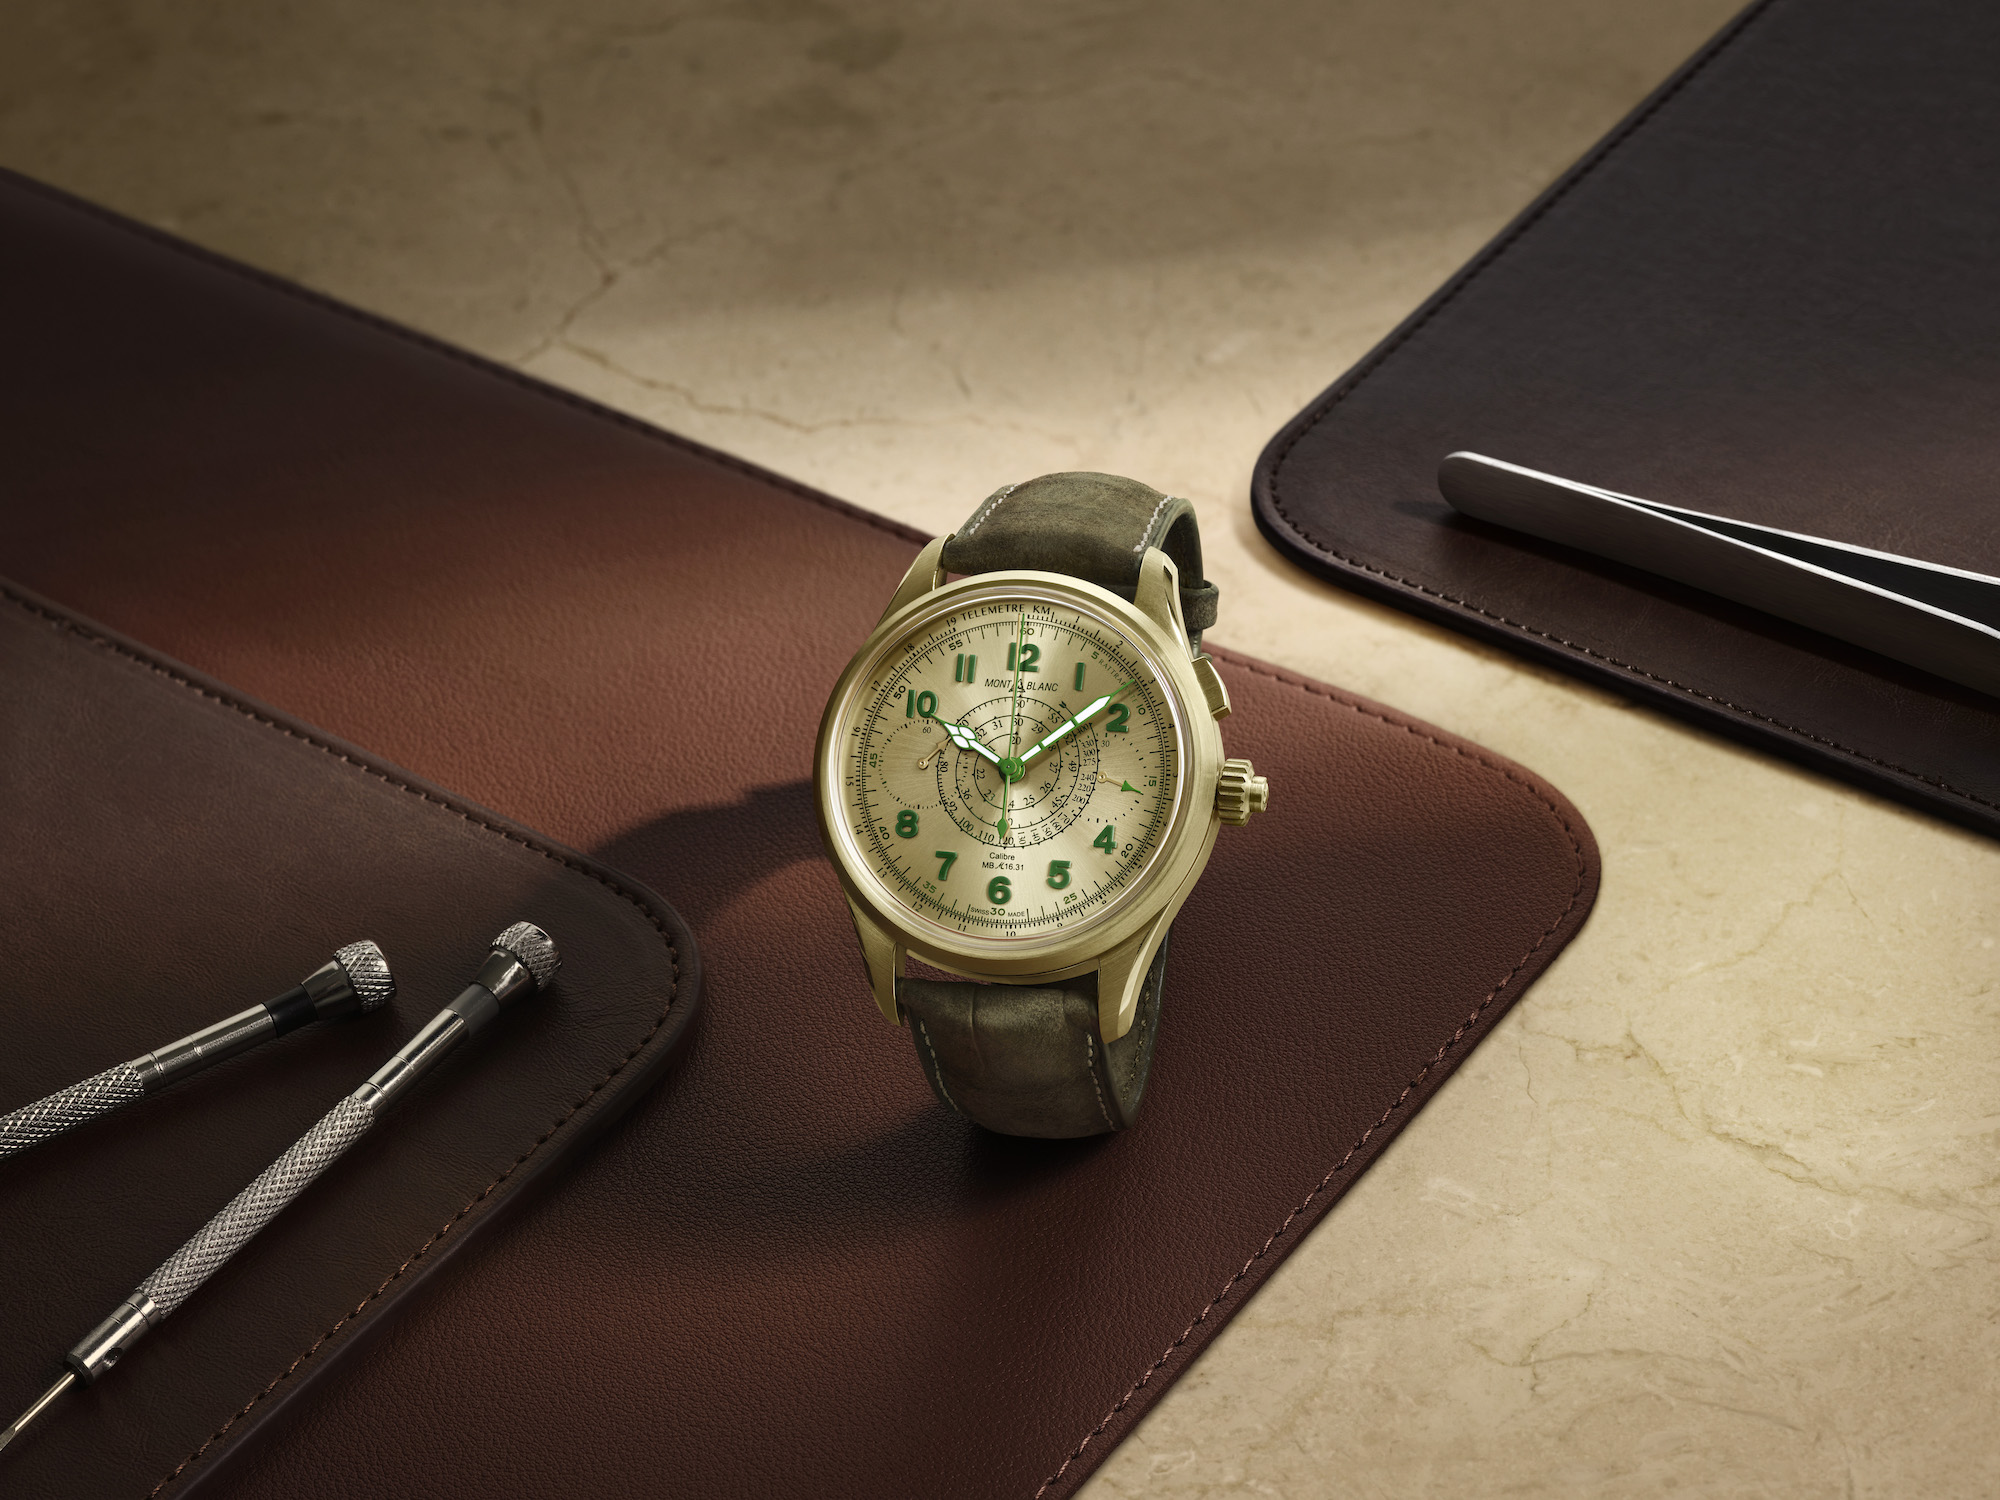 Montblanc 1858 Split Second Chronograph Edicion limitada 18 lifestyle